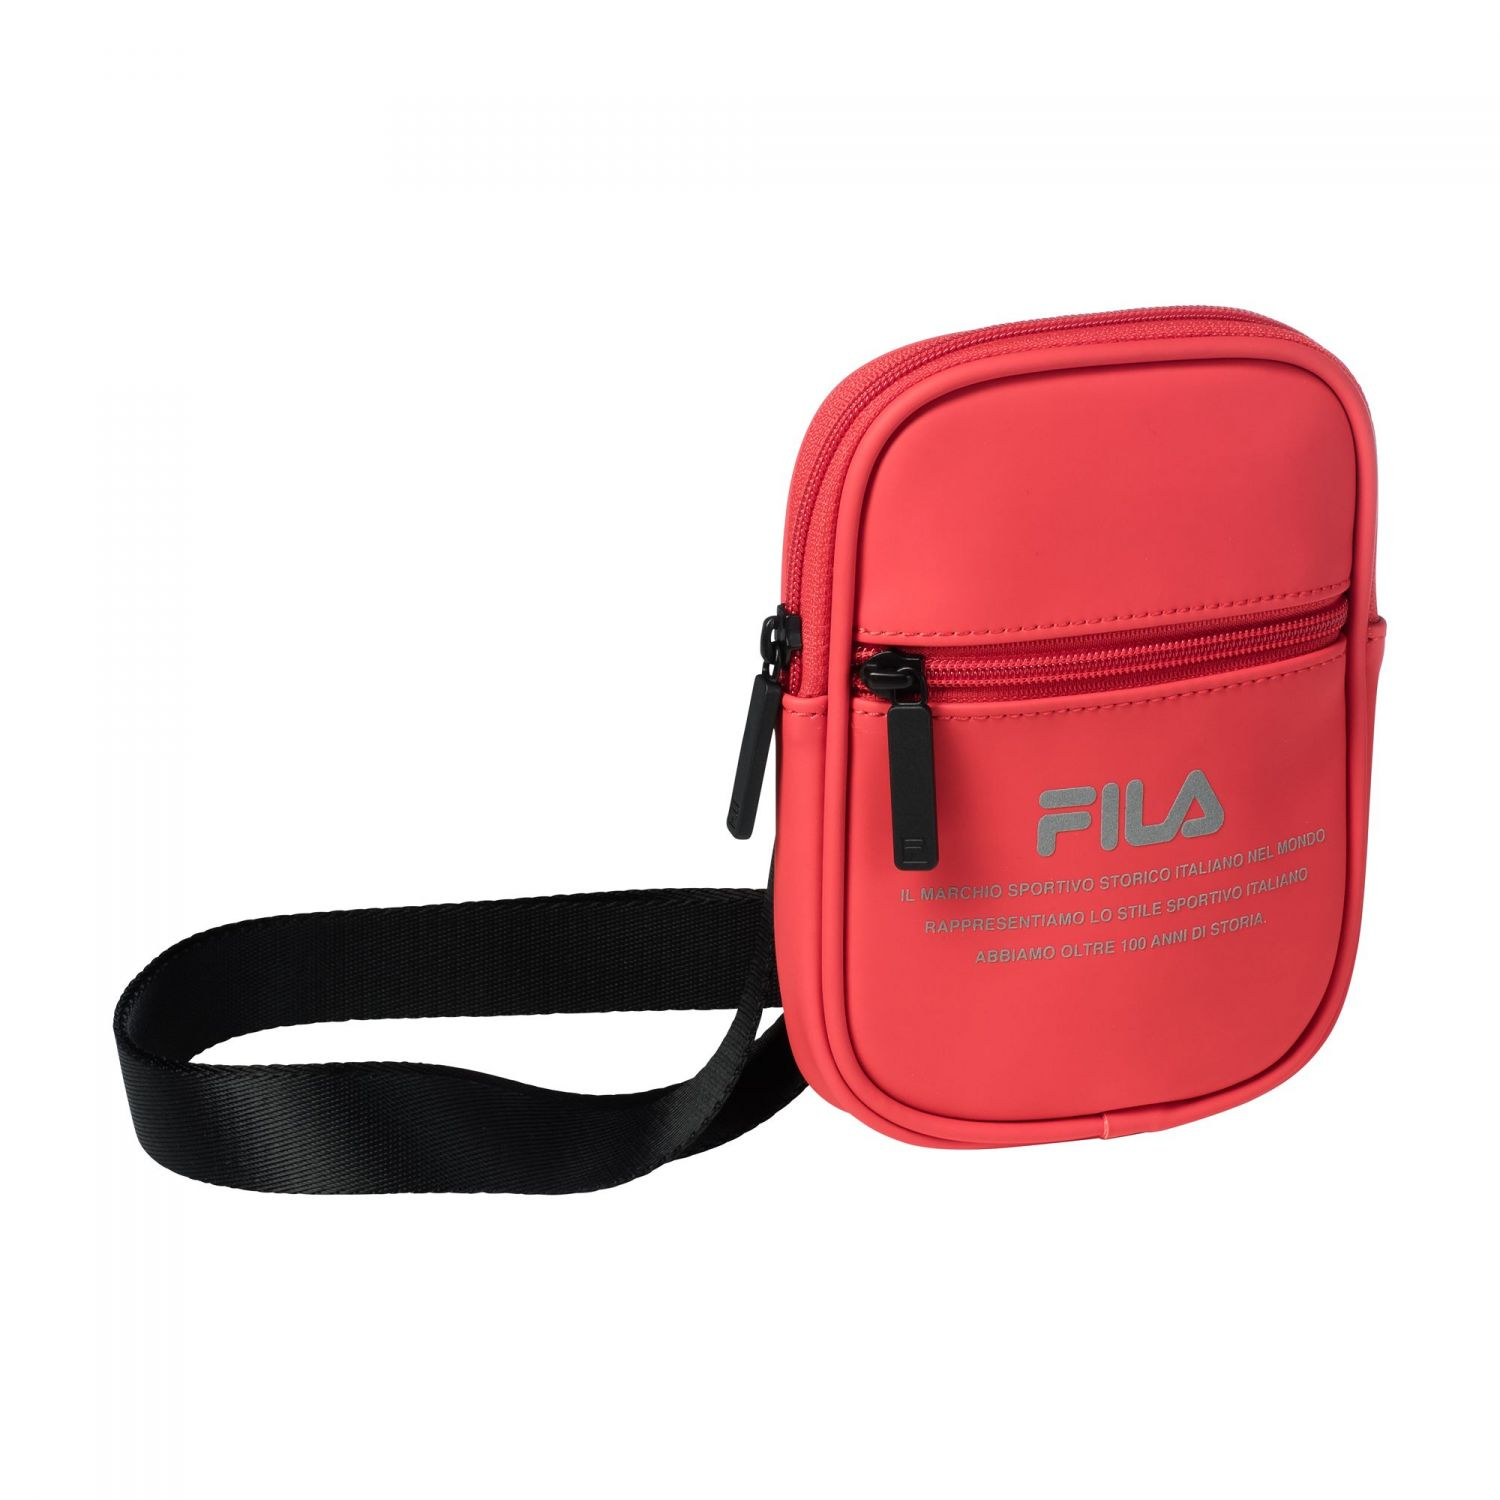 4a36460355 Fila - Cross Body Bag - 00014201686689 - red